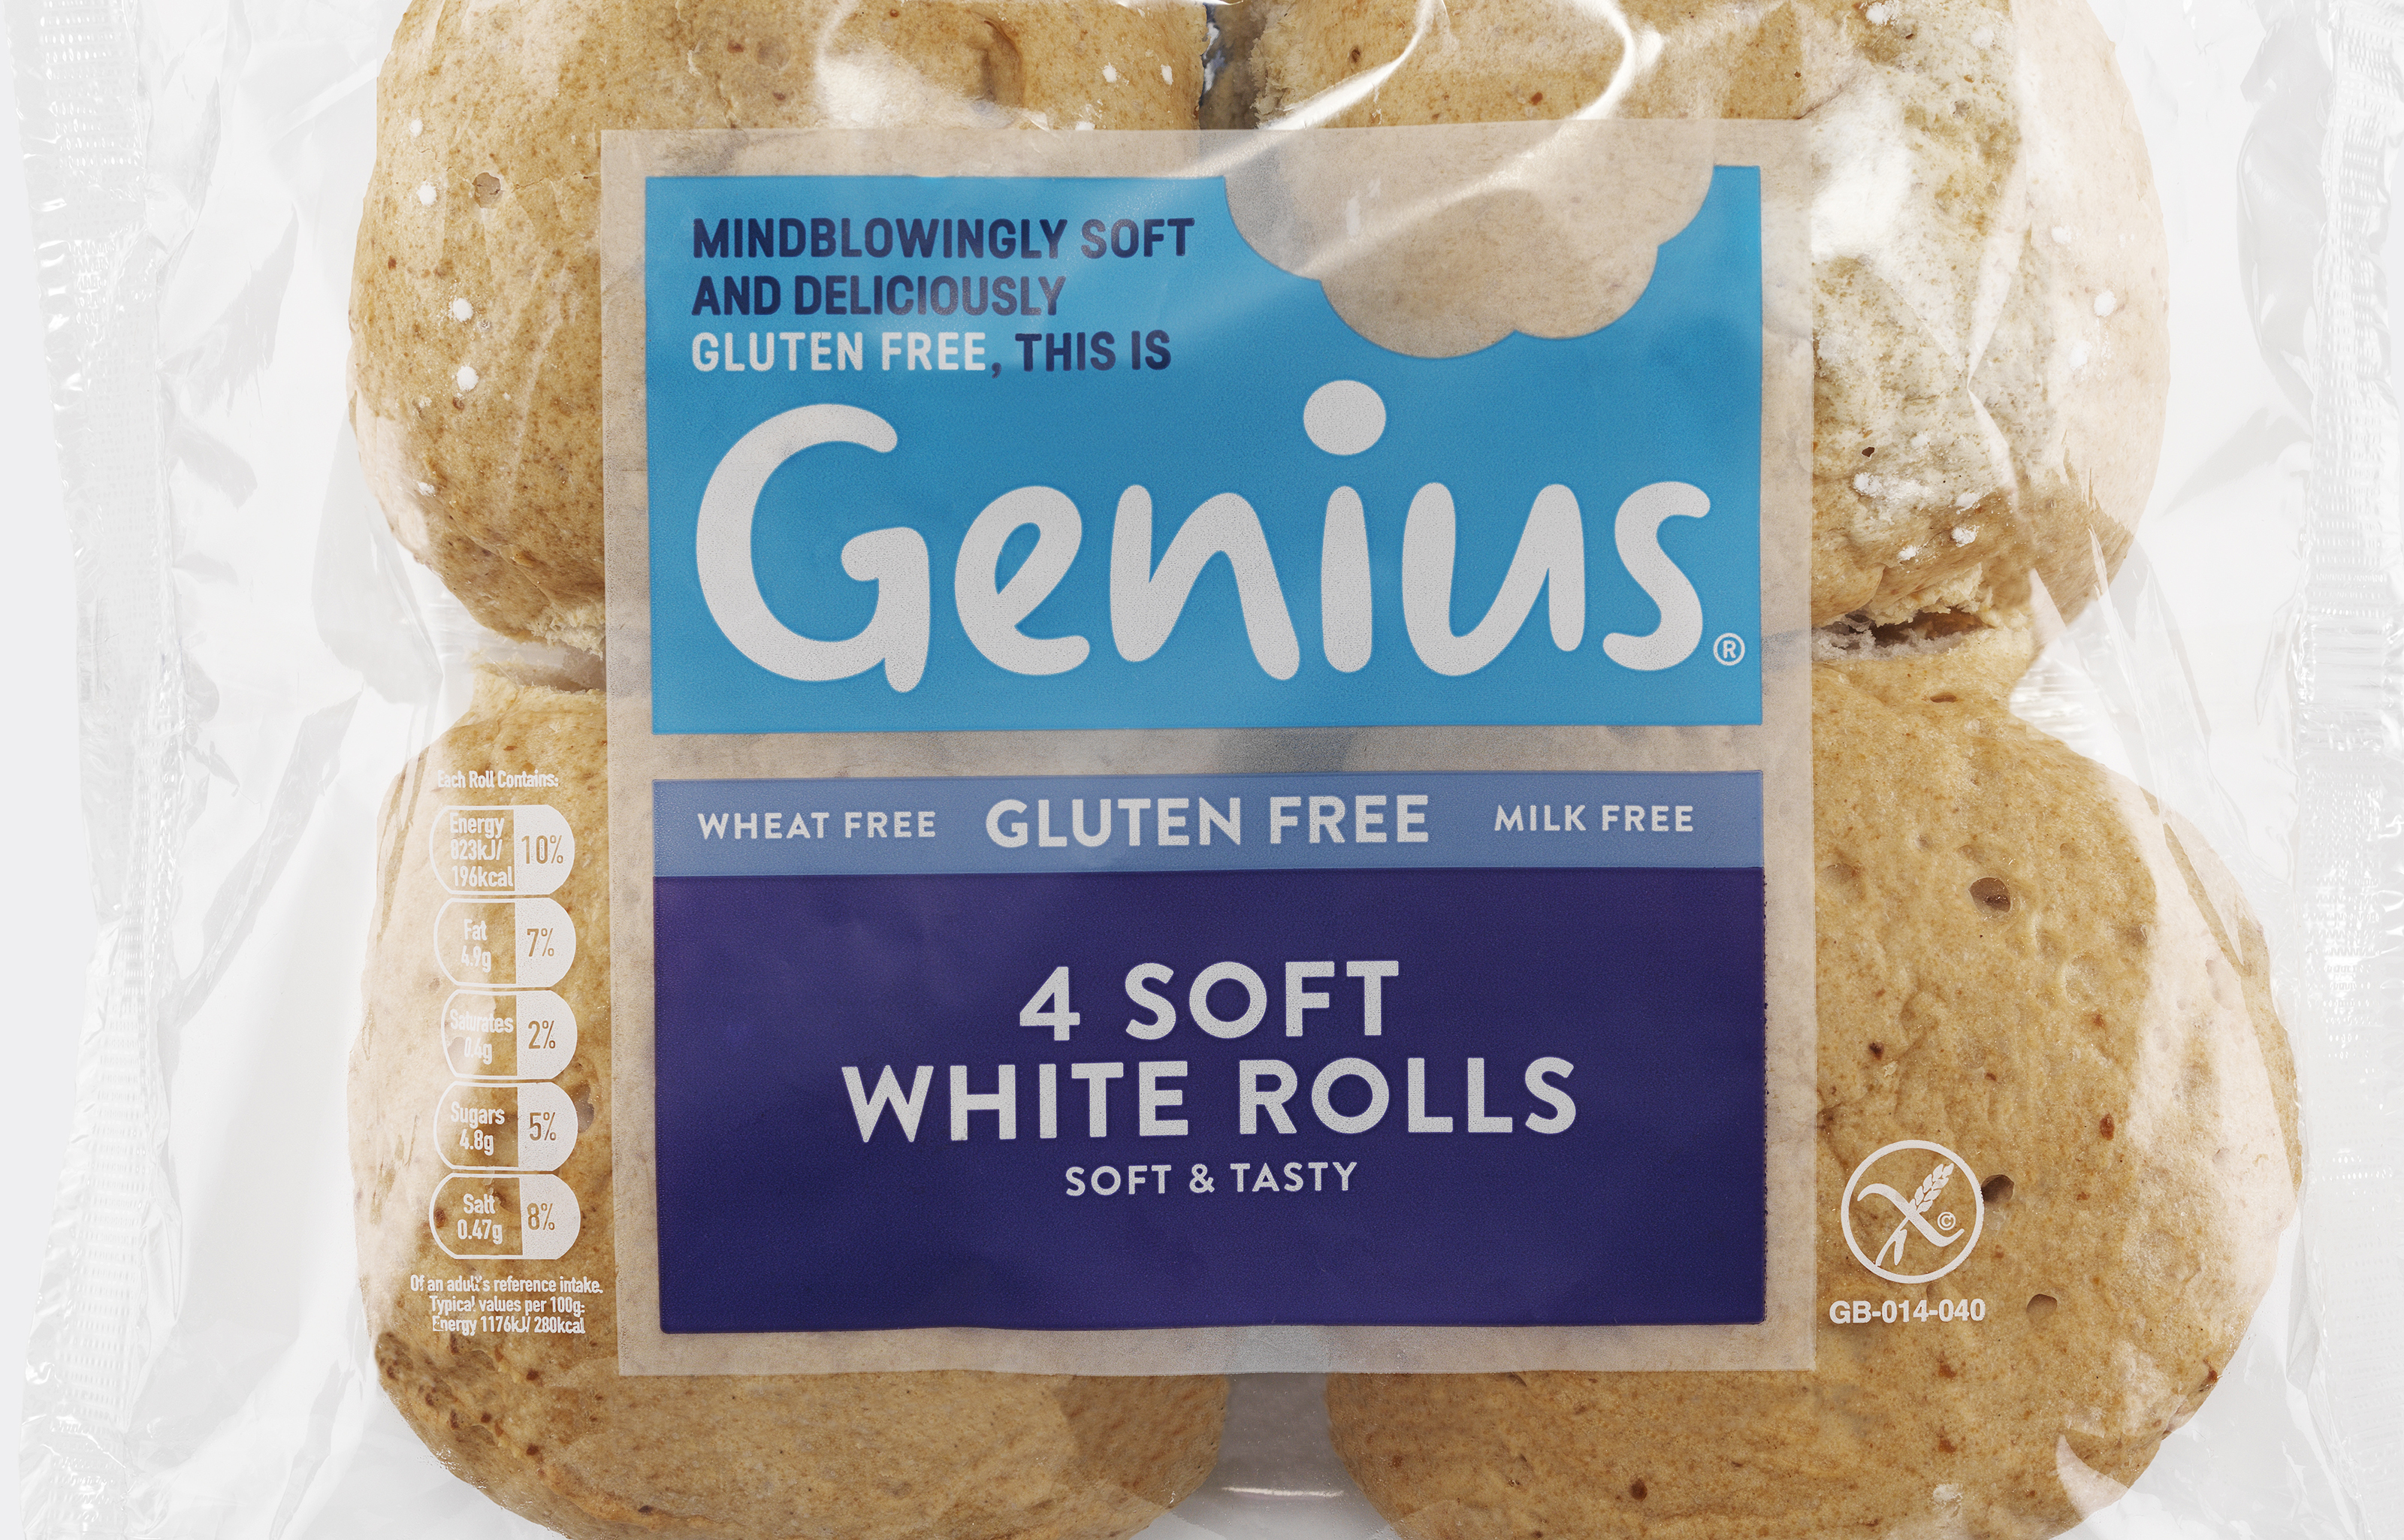 Genius Soft White Rolls